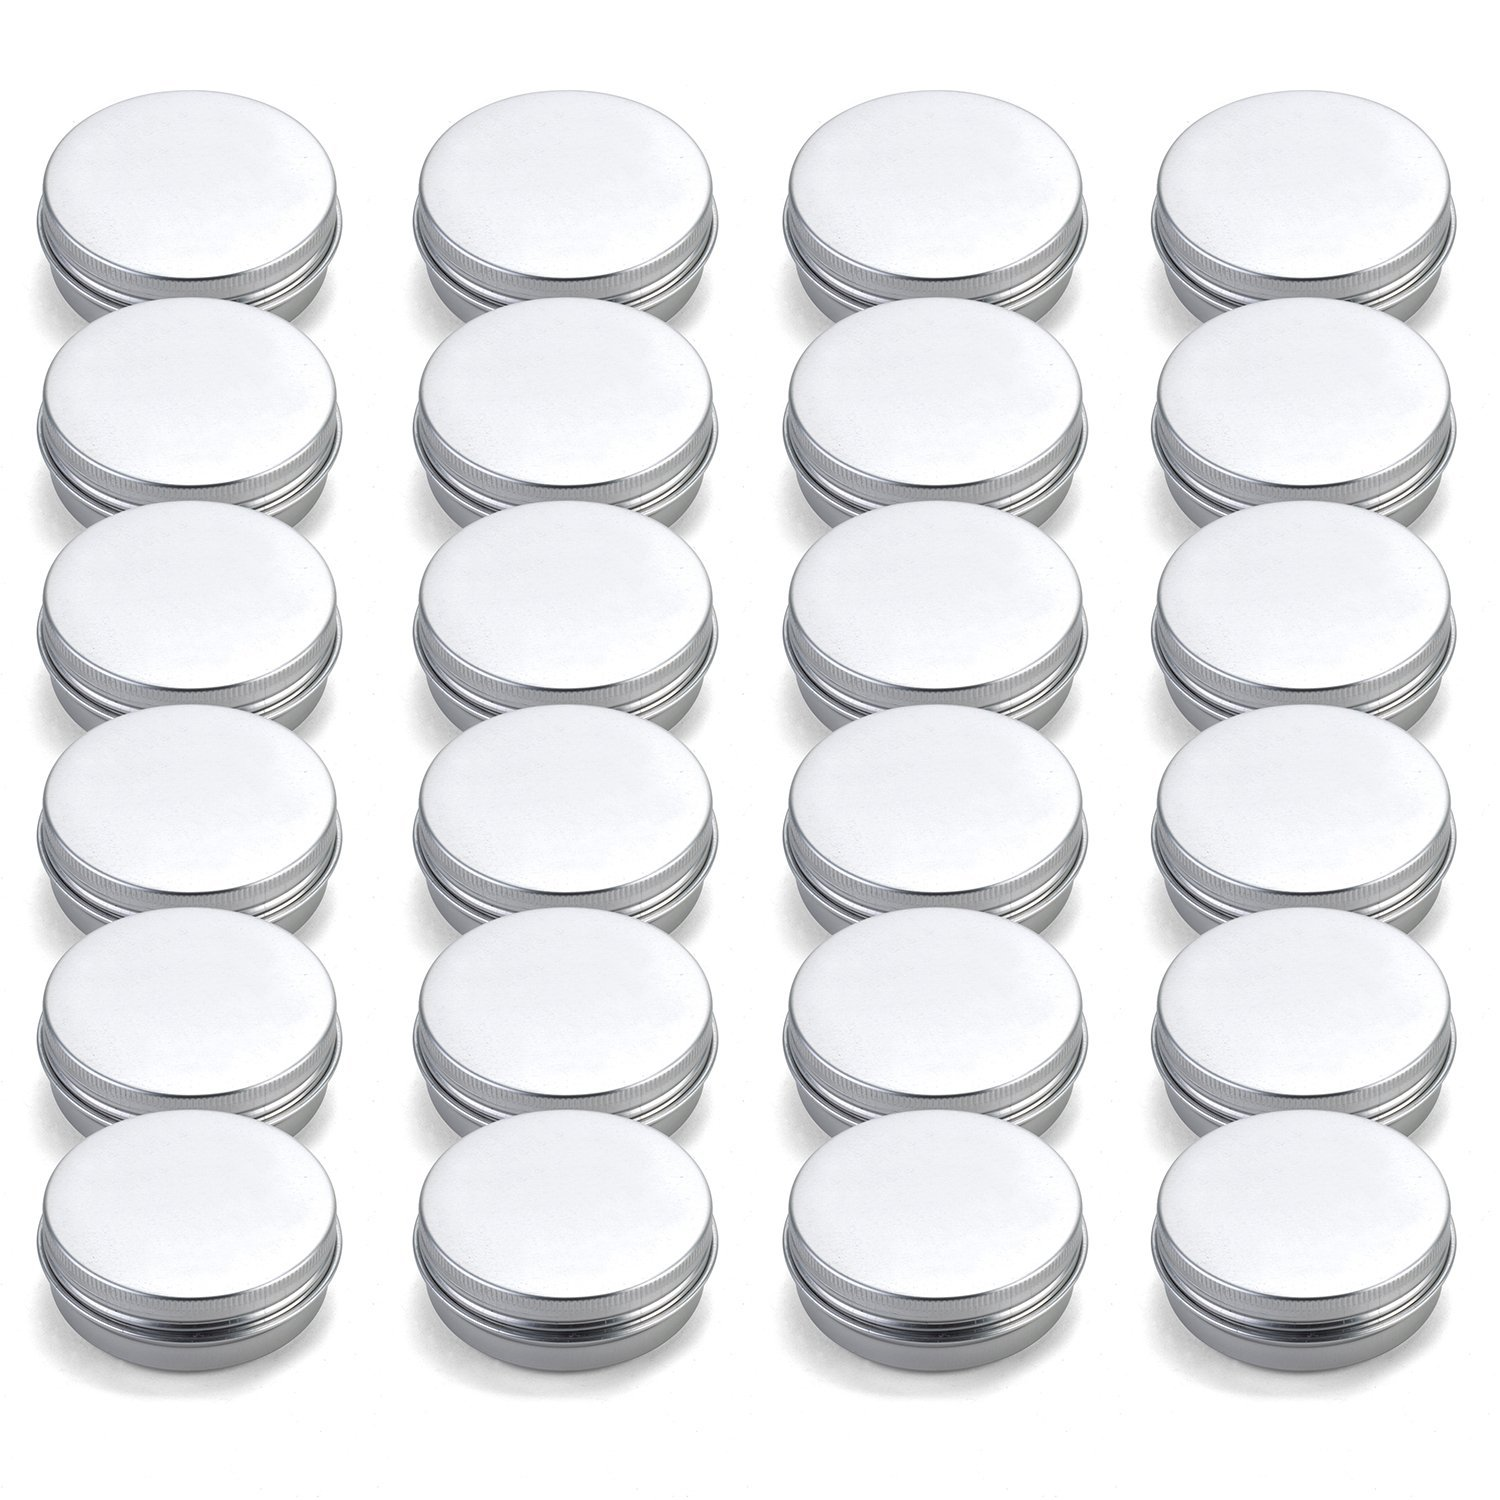 Tosnail 24 Pack 2 oz. Aluminum Round Lip Balm Tin Containers with Screw Thread Lid - Great for Spices, Candies, Tea or Gift Giving by Tosnail